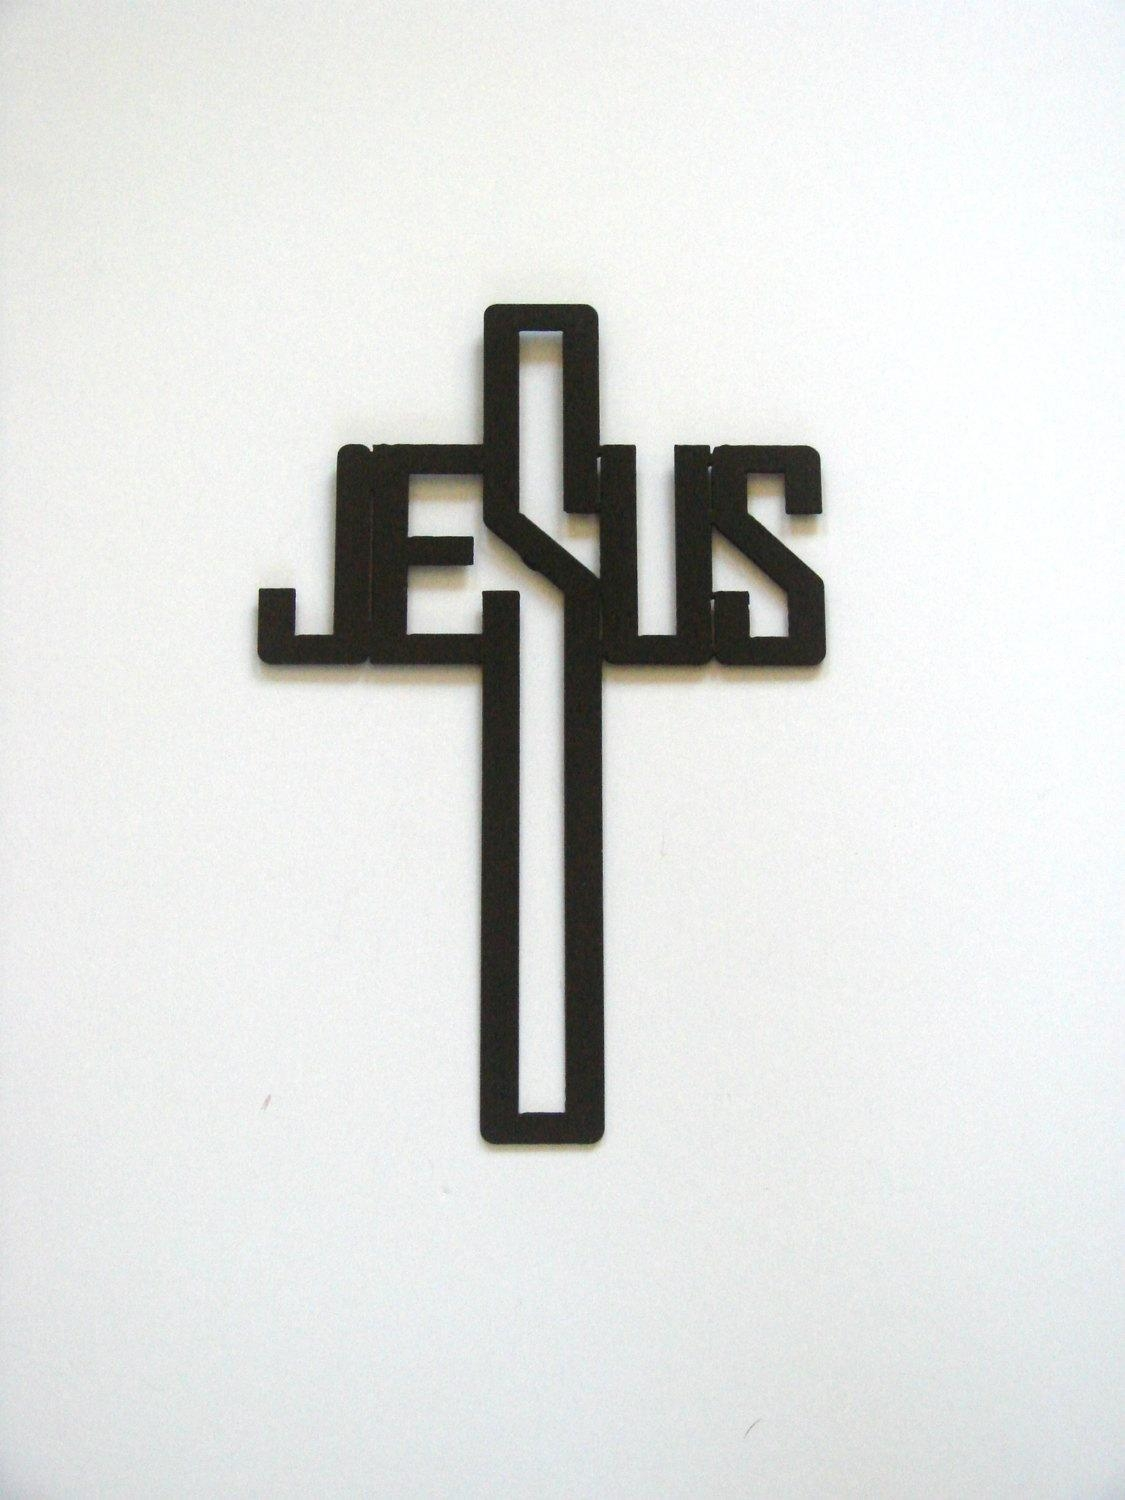 16 Gauge Steel Art Deco Jesus Name Cross Metal Wall Art for Art Deco Metal Wall Art